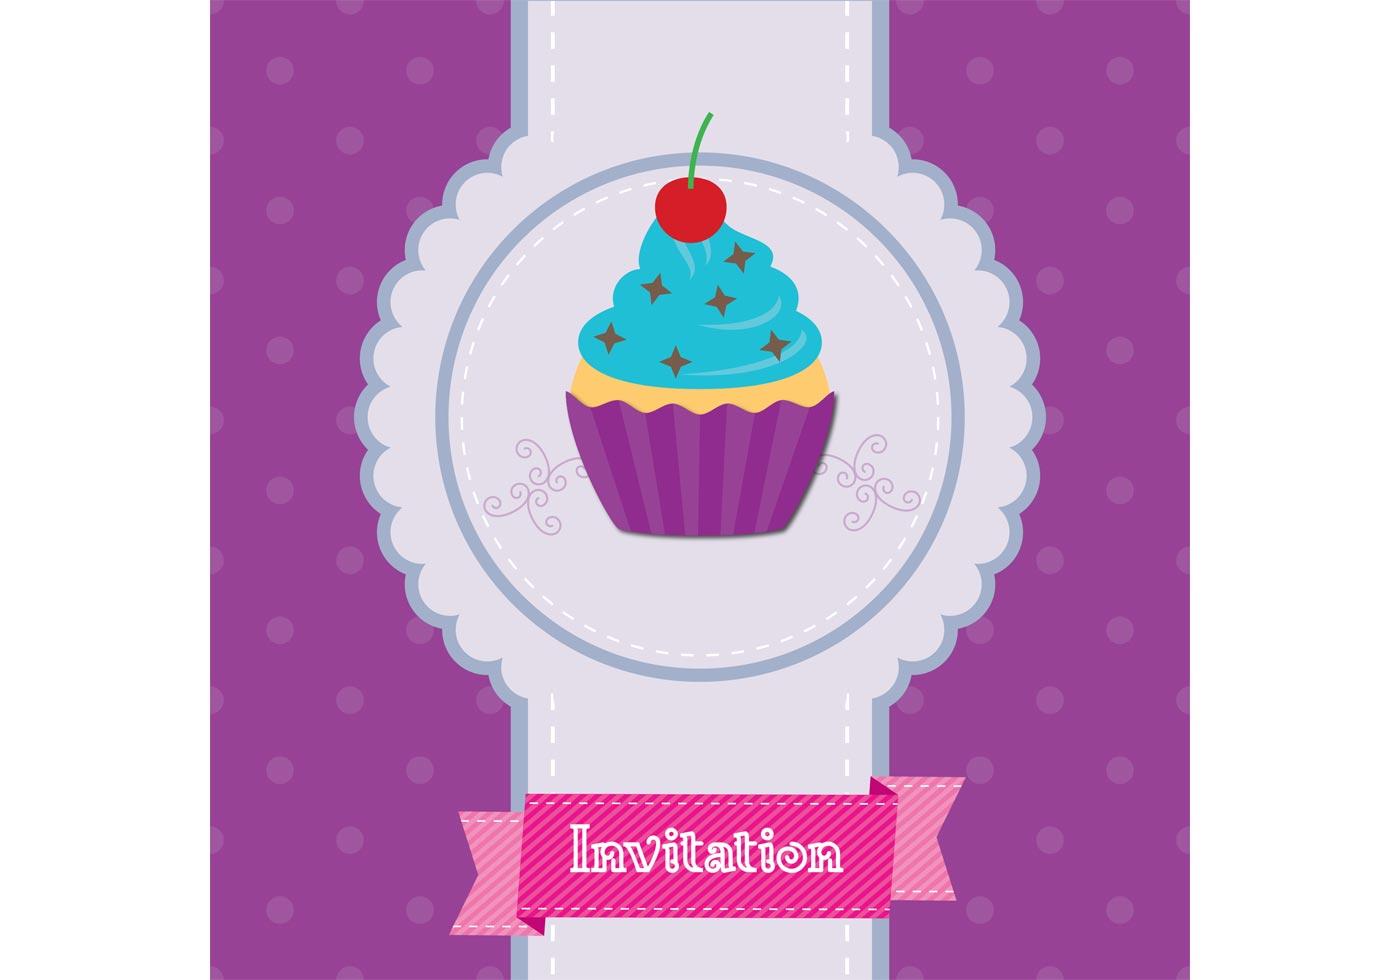 cupcake invitation free vector art 6934 free downloads